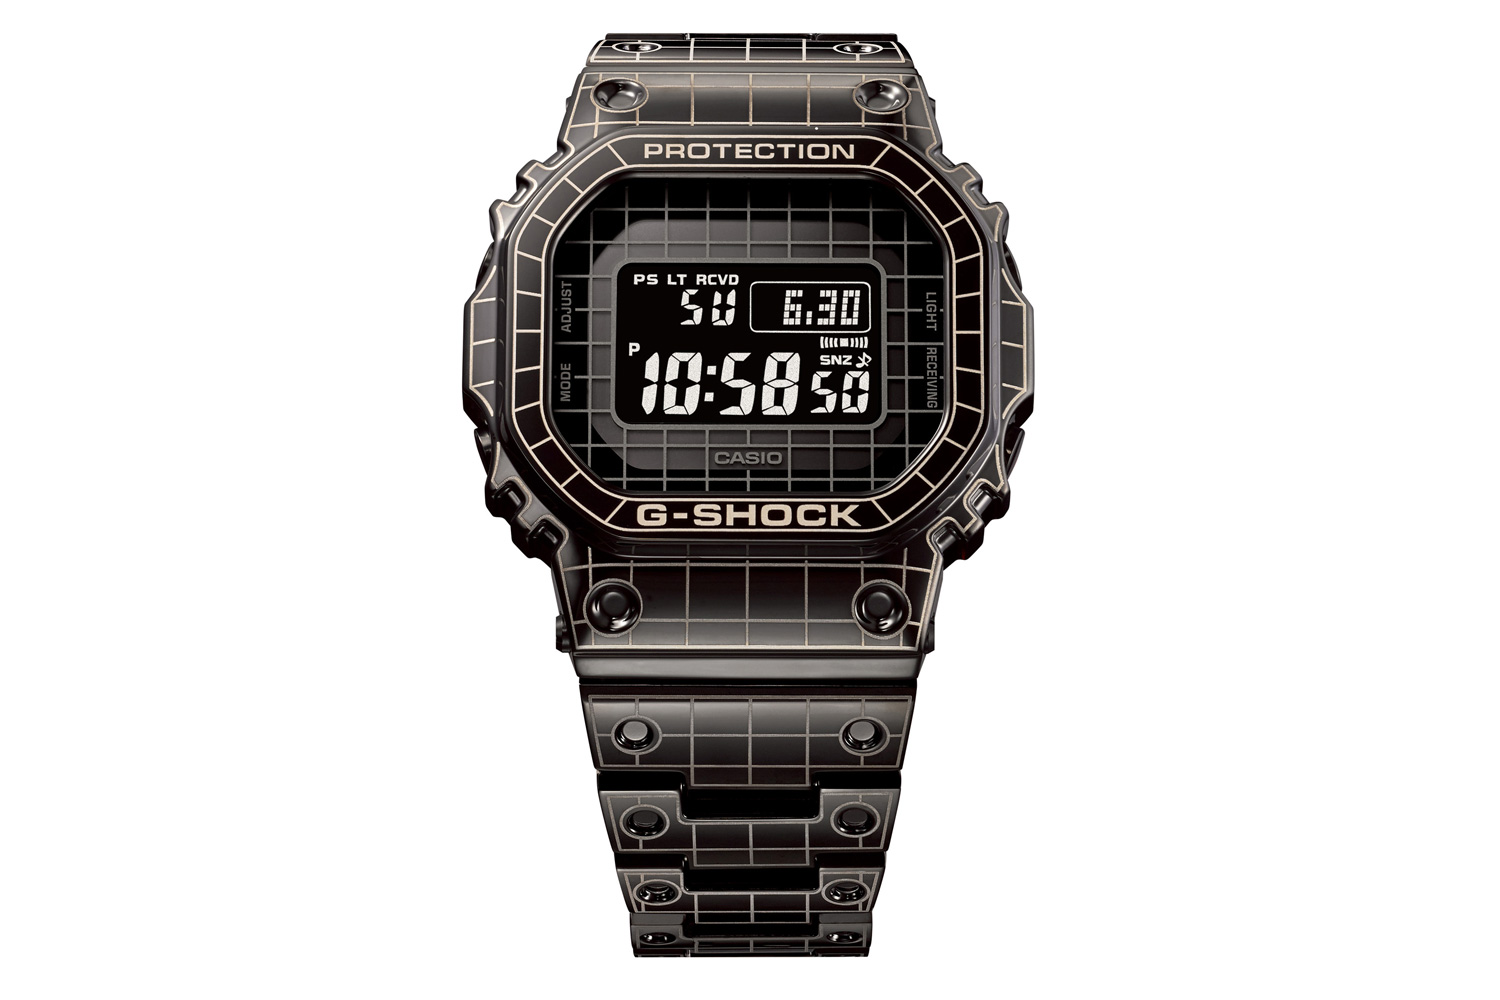 Full Metal G-SHOCK GMW-B5000CS with Grid Design